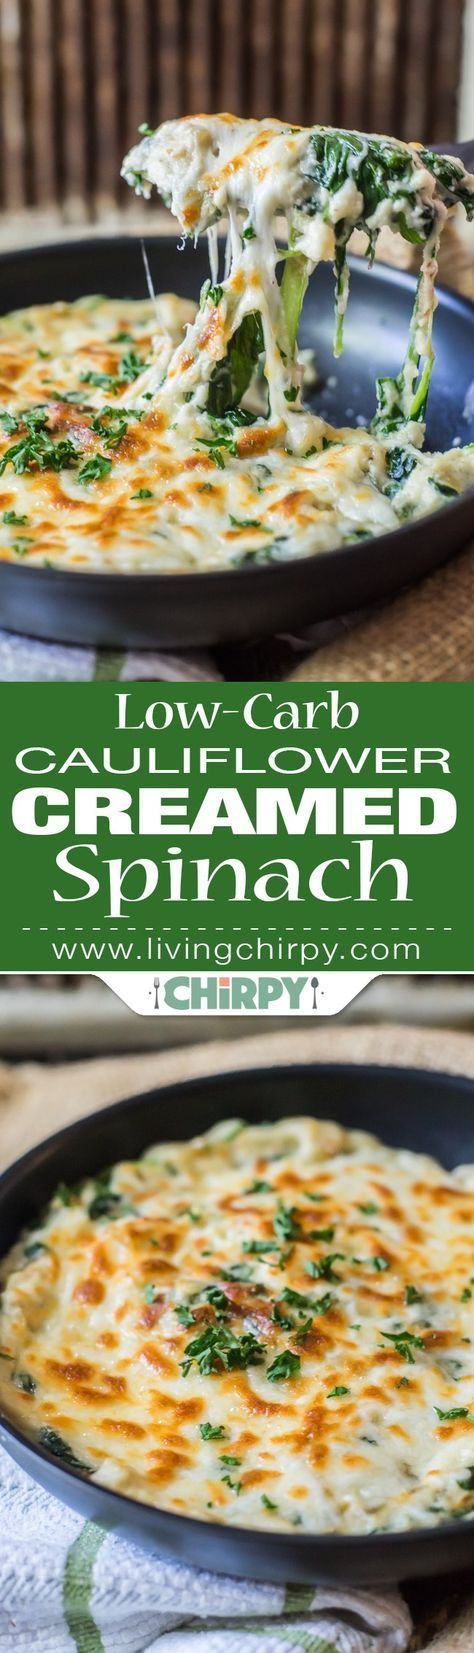 Low-Carb Cauliflower Creamed Spinach -> a perfect low-carb vegetable side dish that tastes like a million bucks and would easily trick the kids into eating veggies!